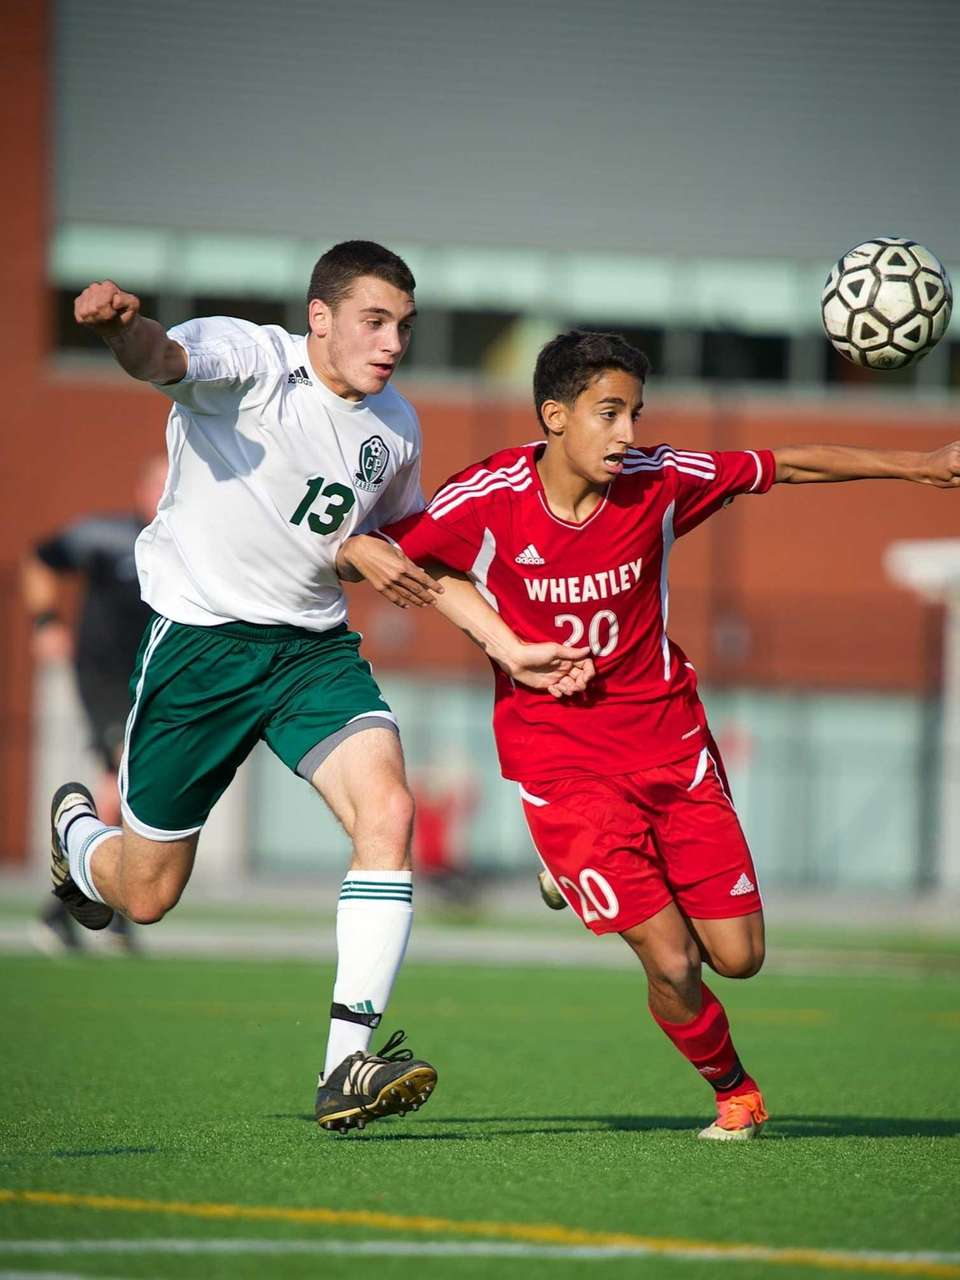 Carle Place defender Nick Hytell (13) battles with